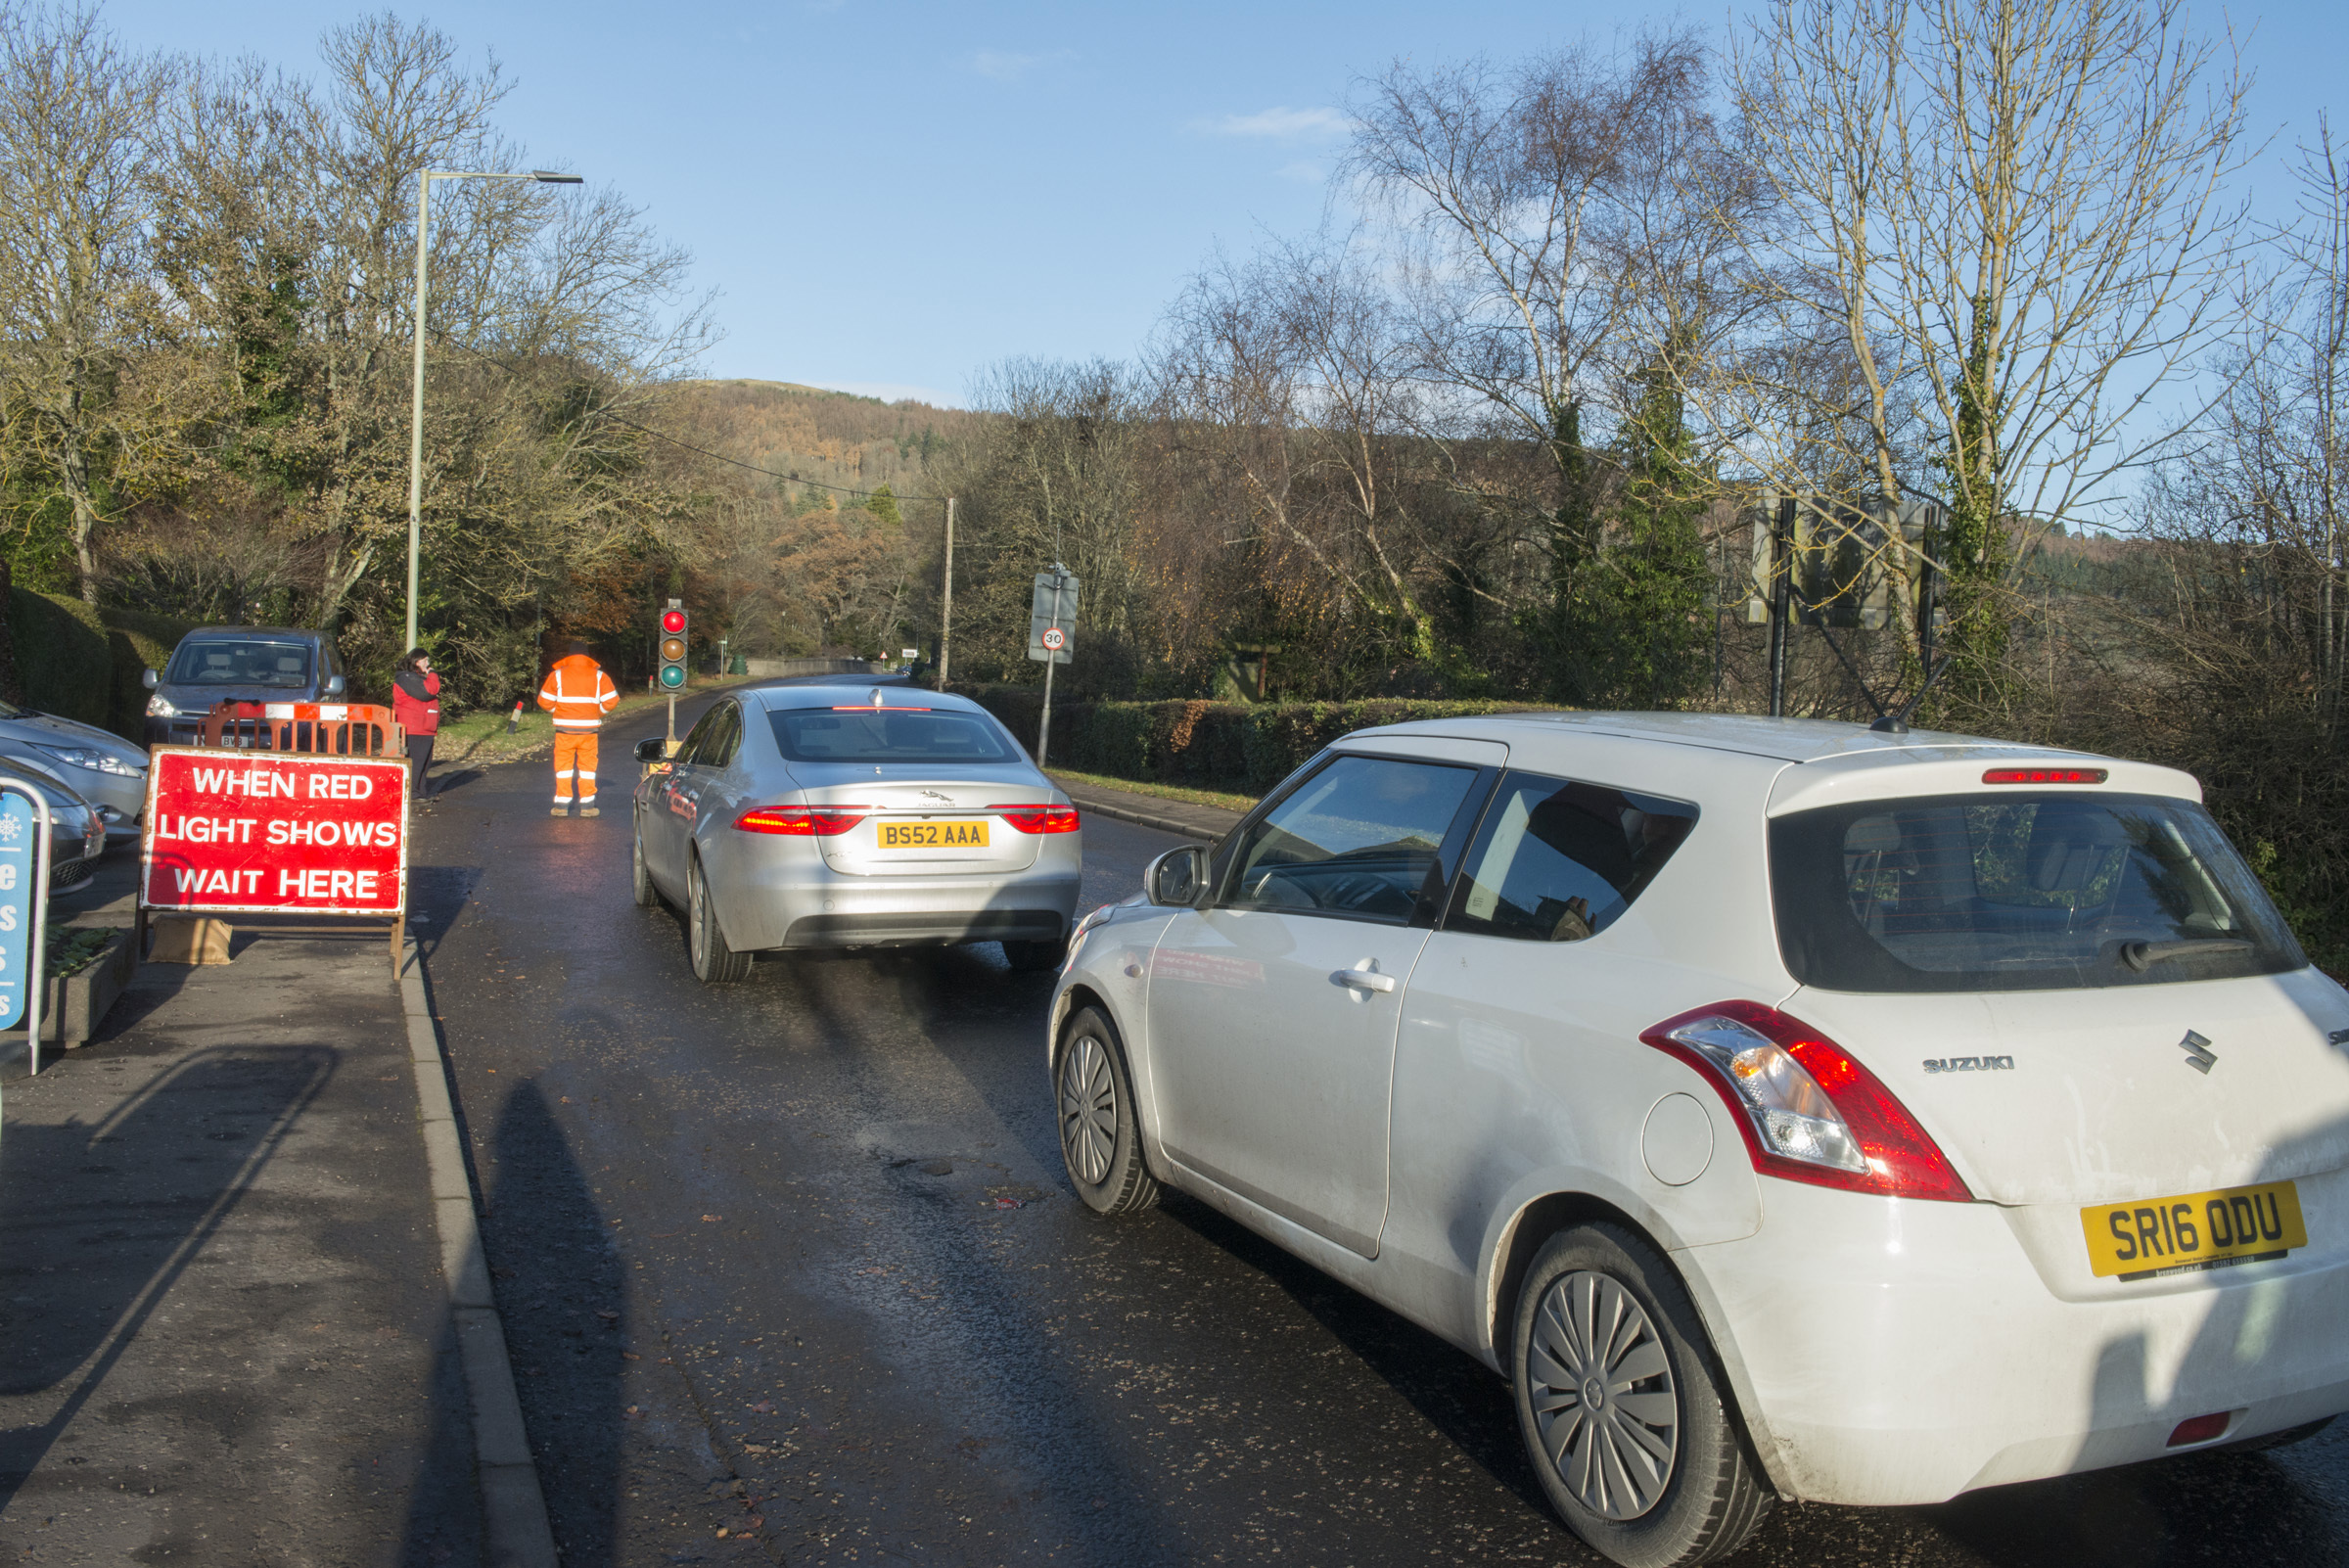 Traffic is stopped on the main road as Outlander filming takes place at the River Edge Lodges, Bridge of Earn by Perth.